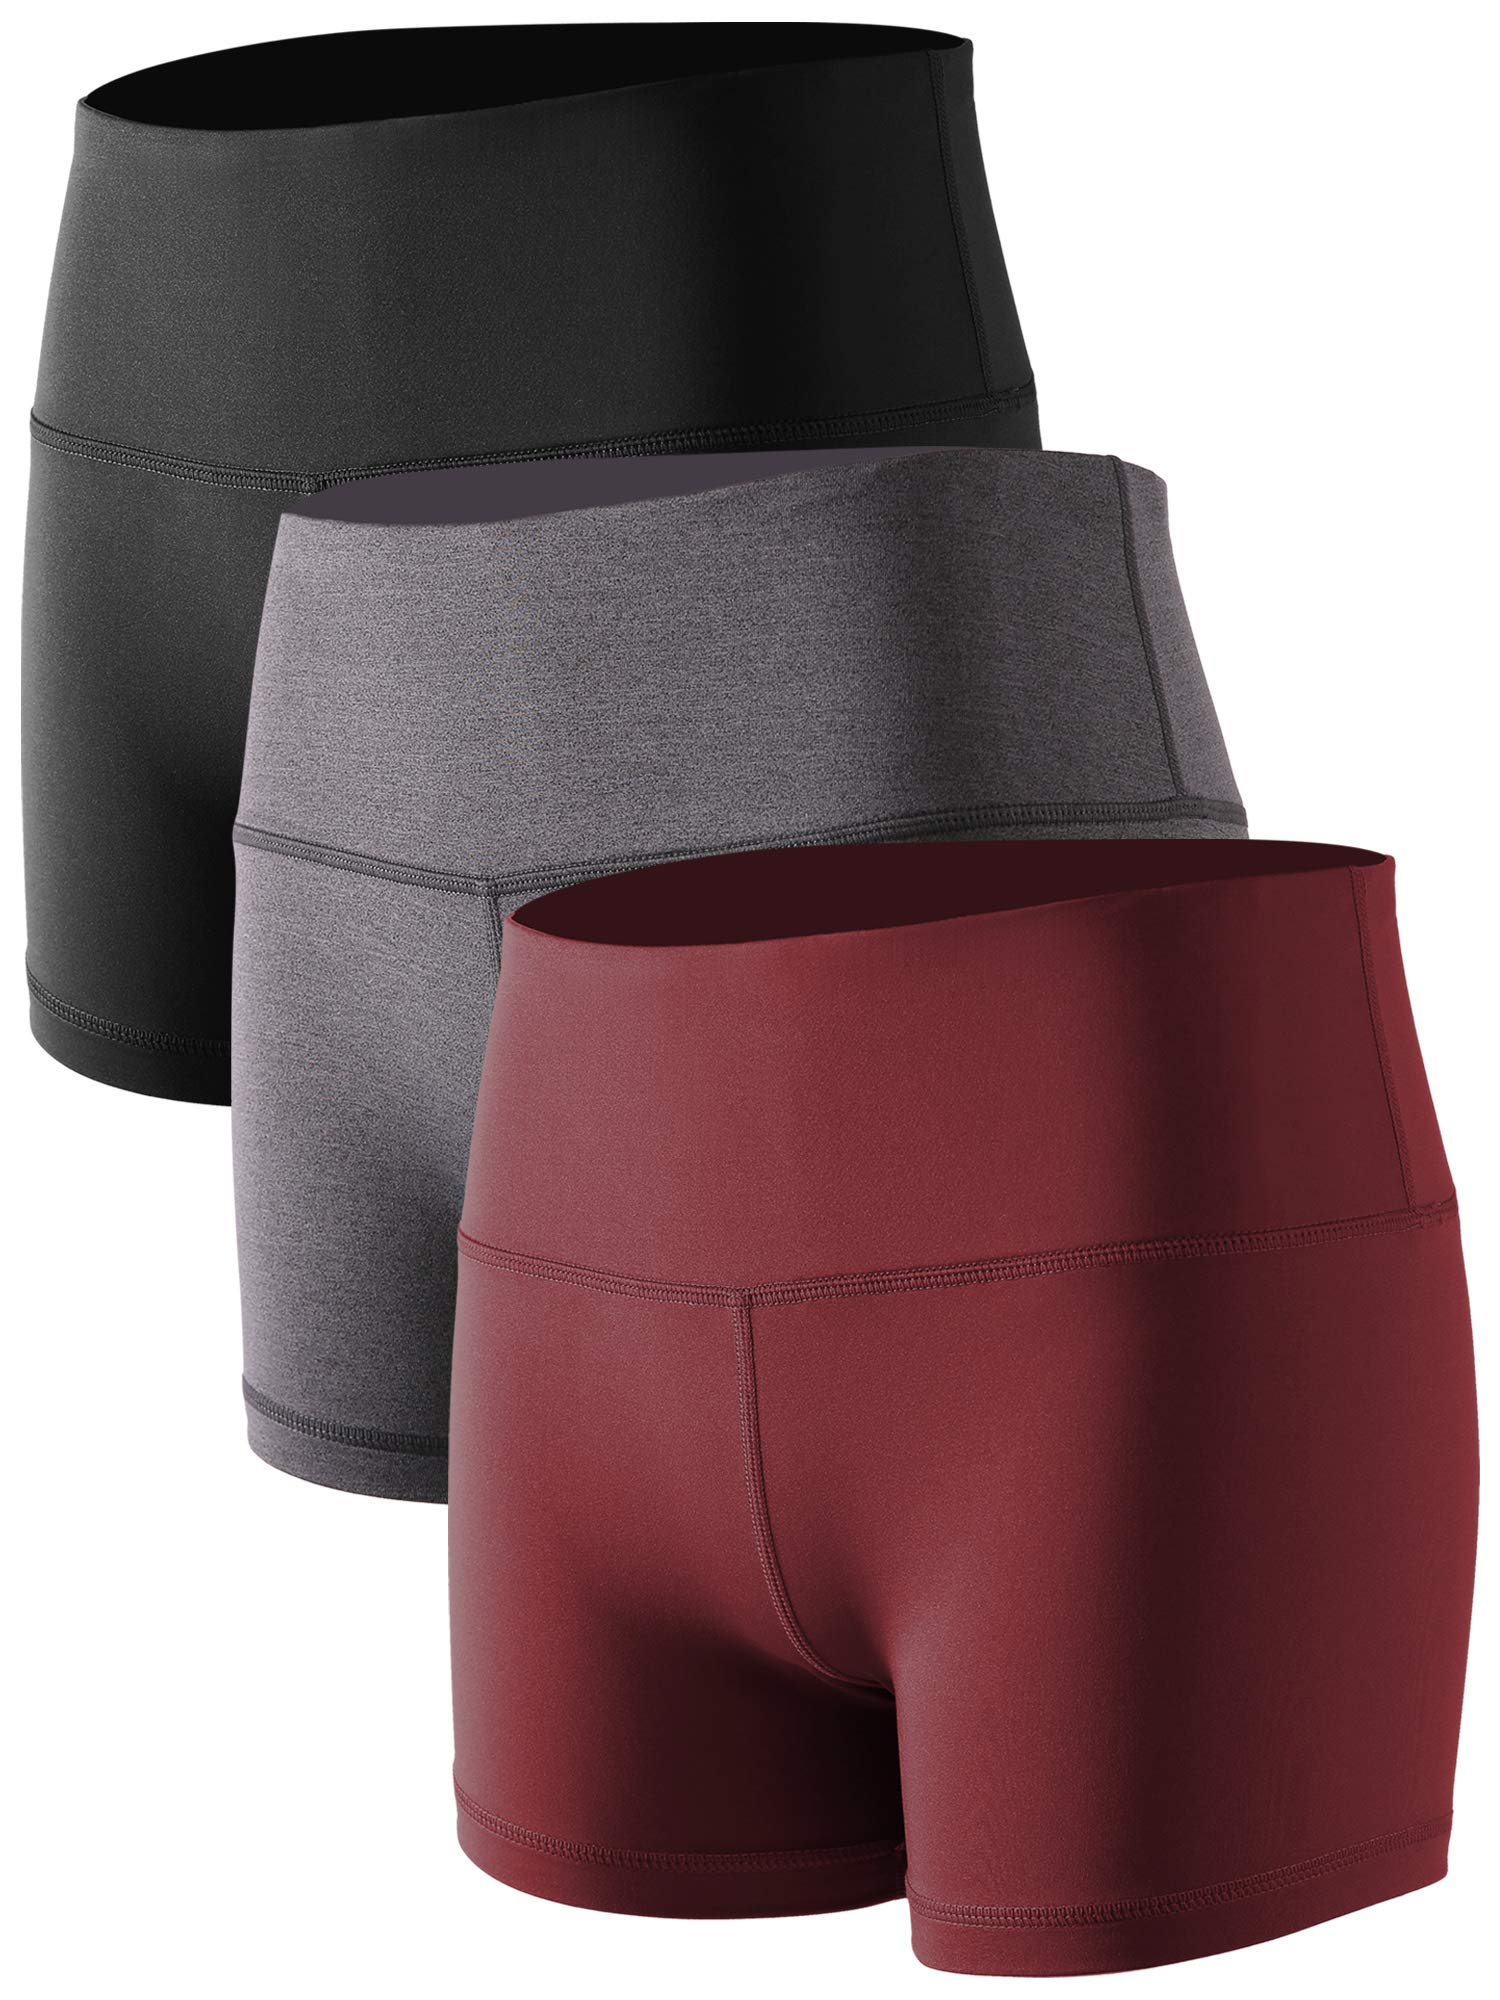 Cadmus Women's Stretch Fitness Running Shorts with Pocket,3 Pack,05,Black,Grey,Wine Red,Large by Cadmus